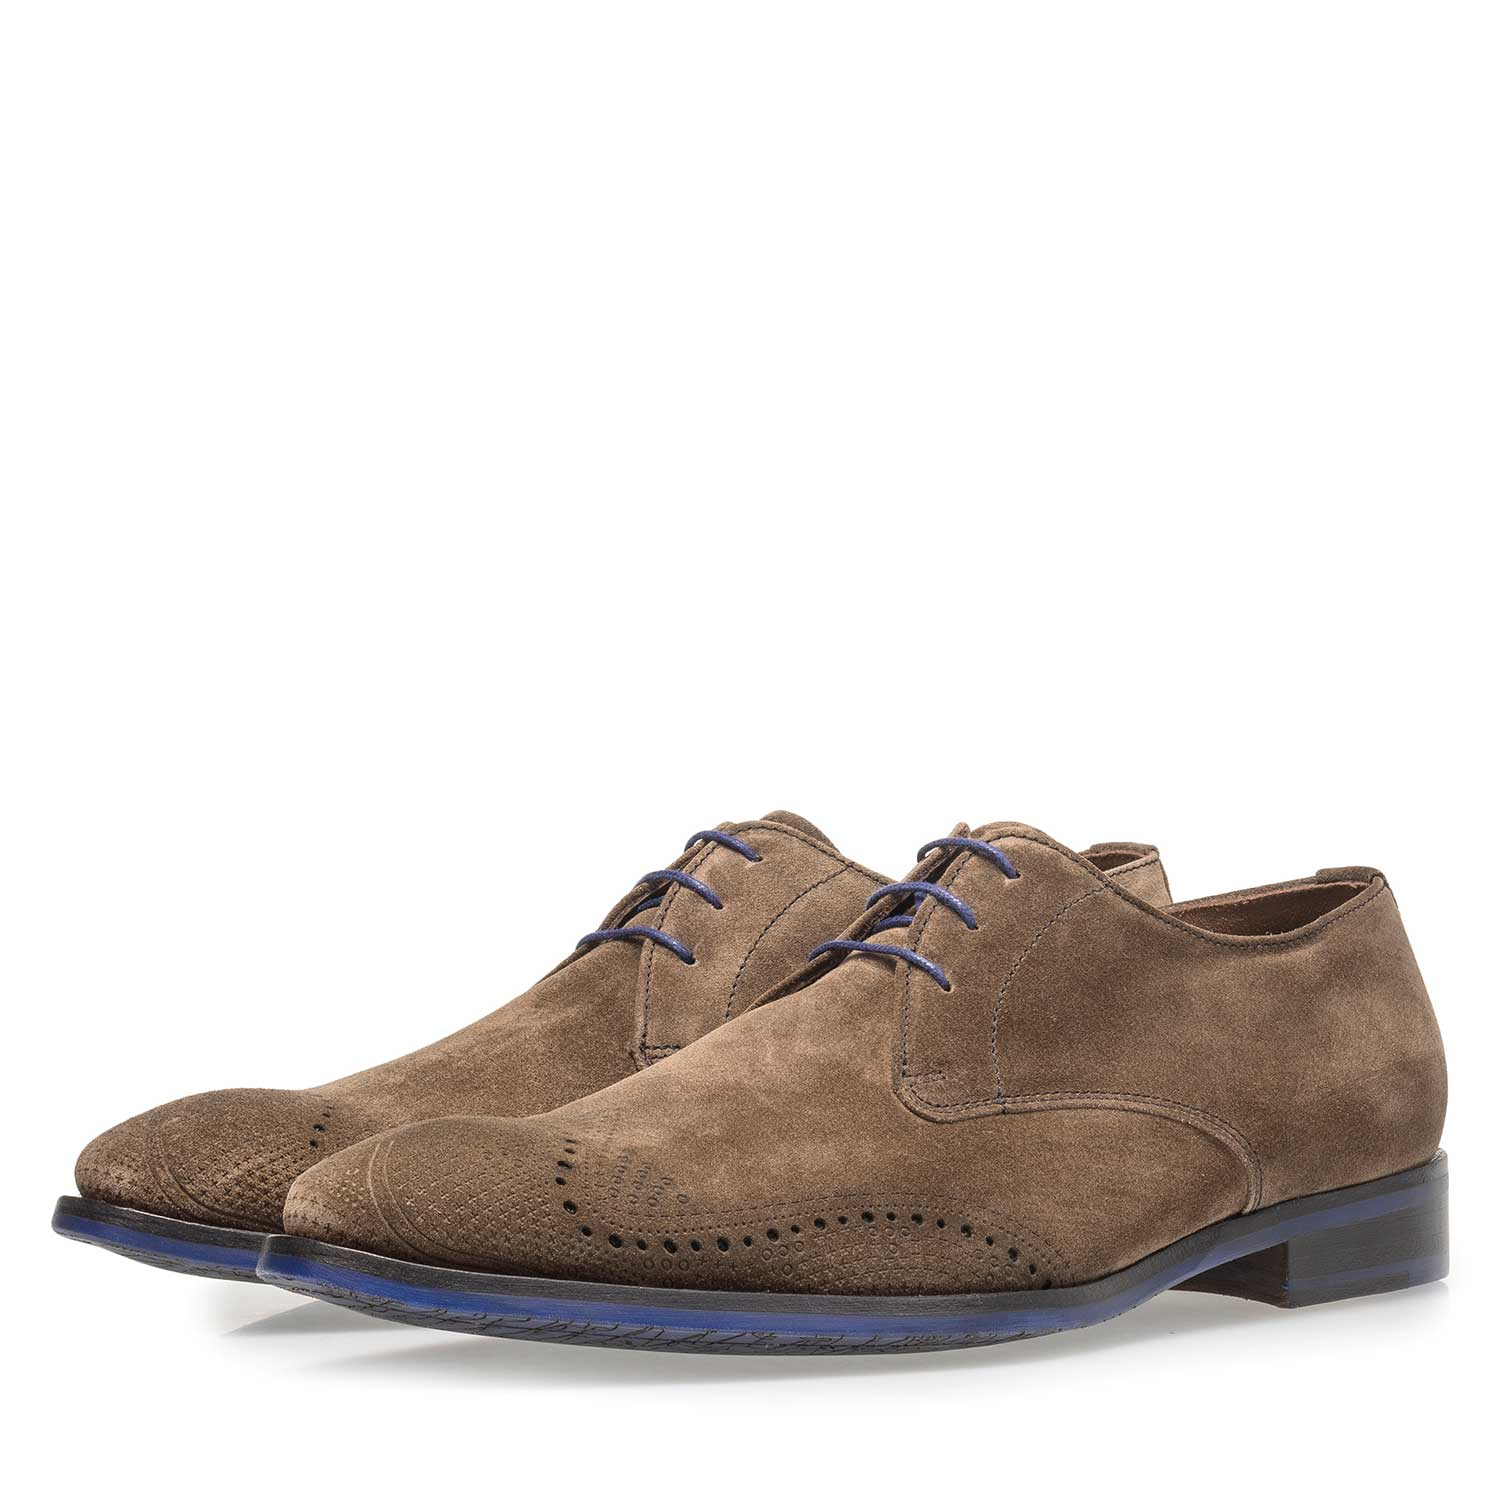 18175/04 - Dark taupe-coloured suede leather lace shoe